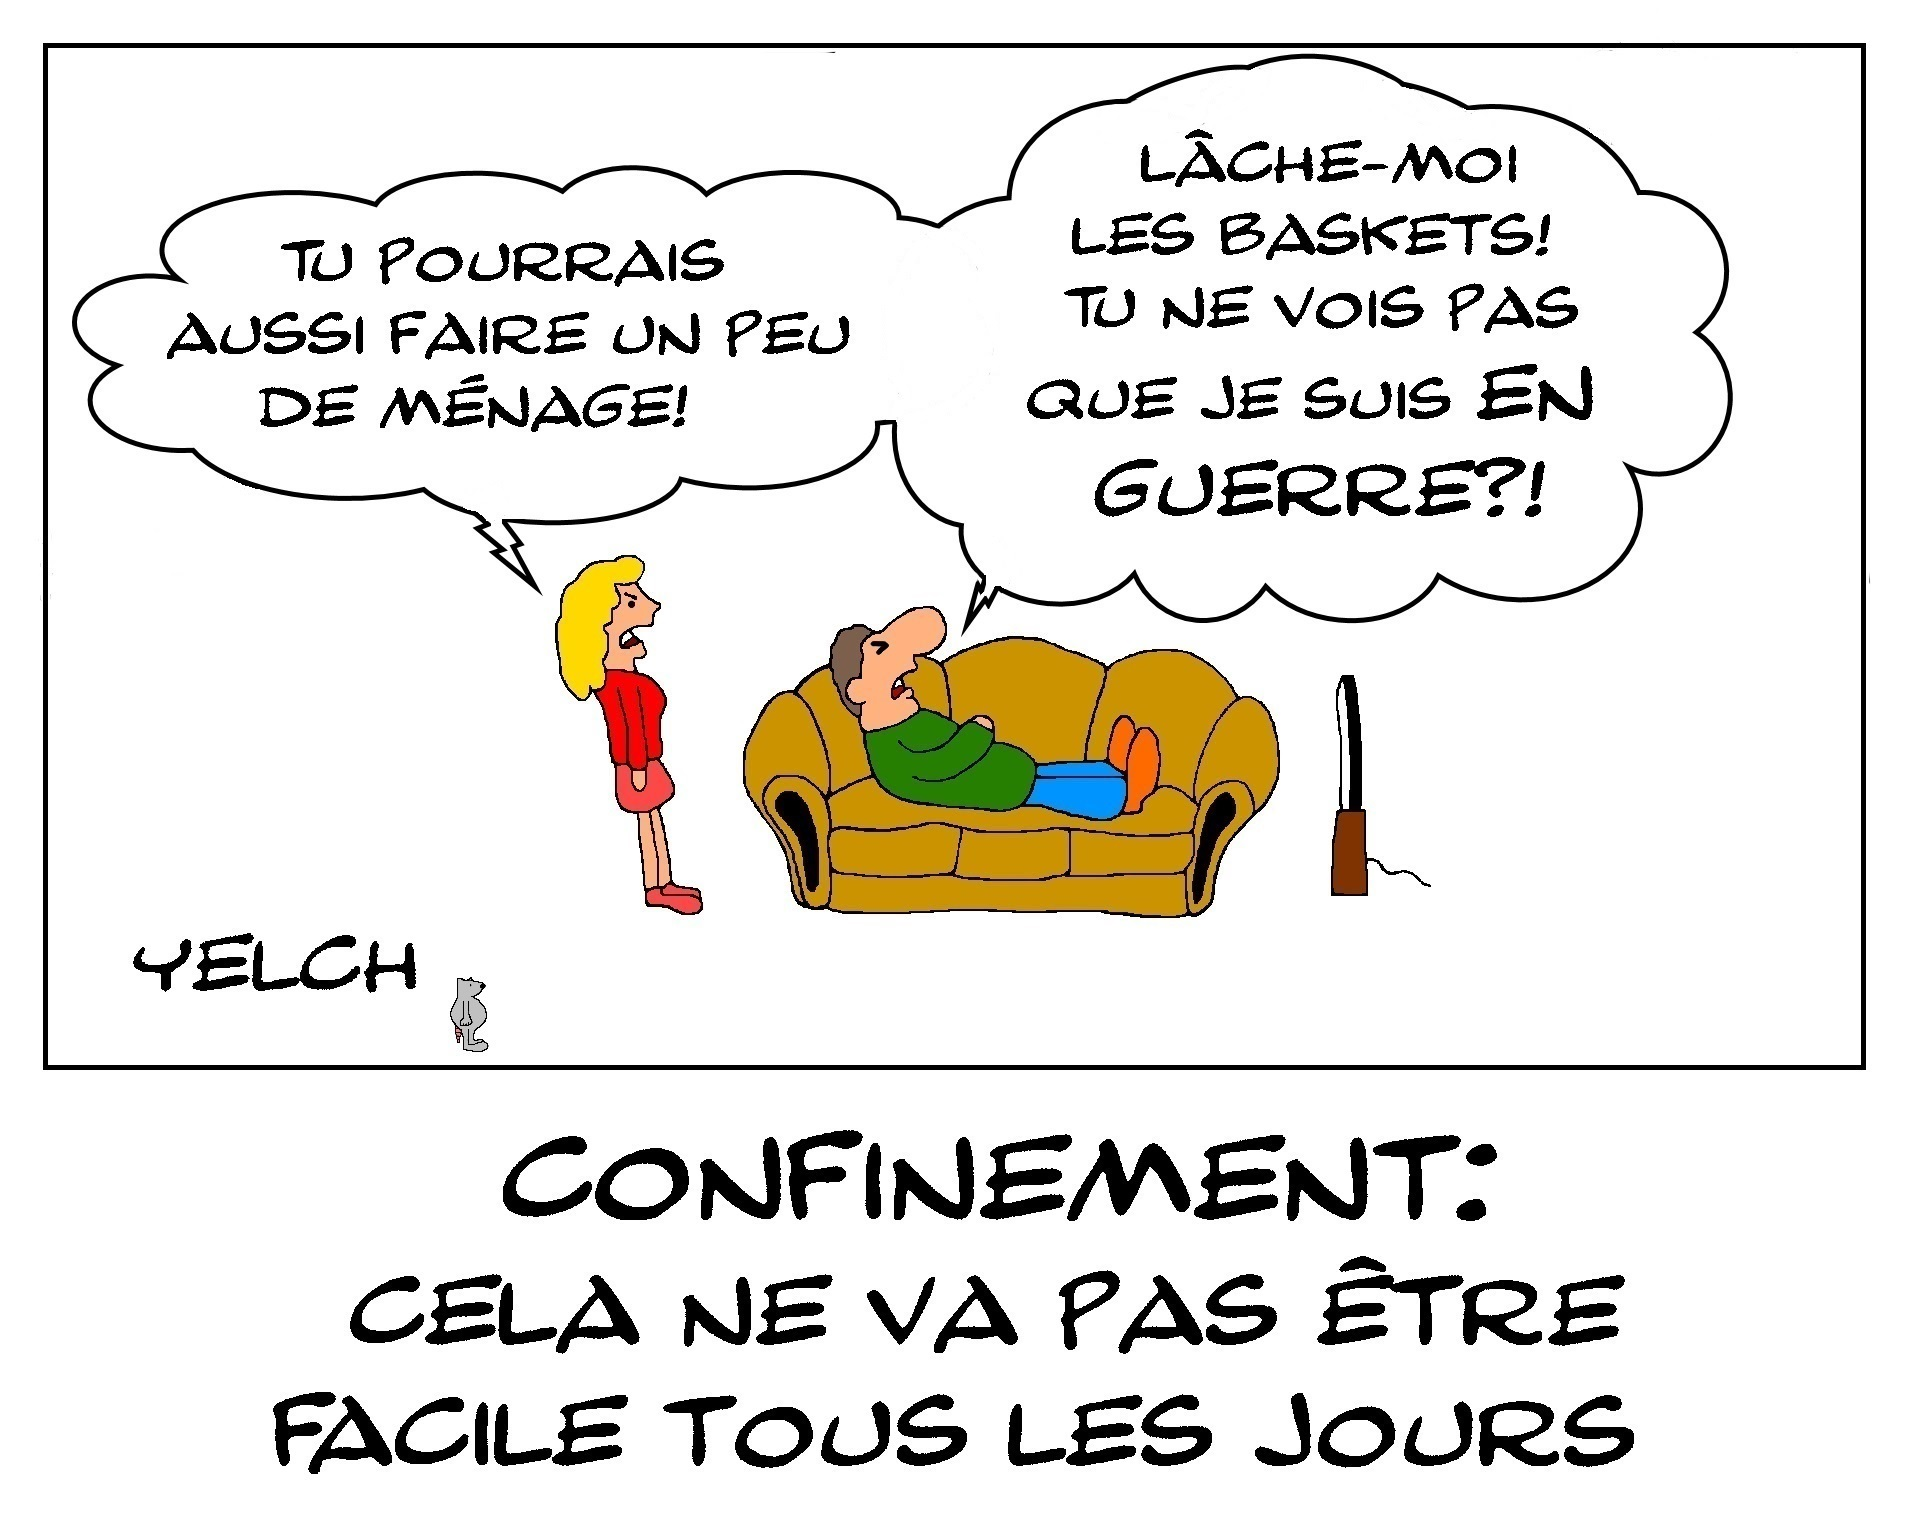 CONFINEMENT ET MENAGE